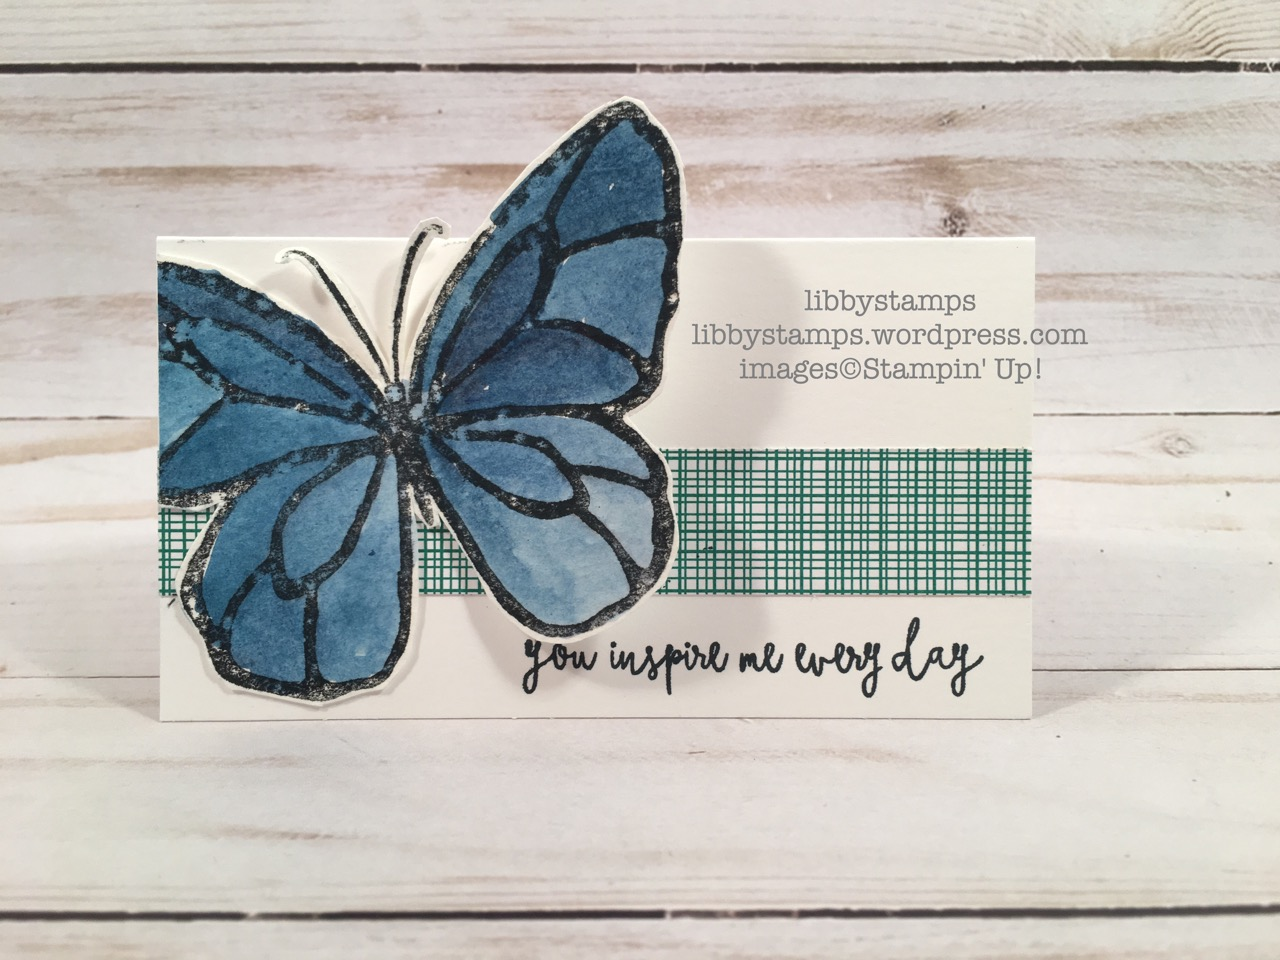 libbystamps, stampin up, Yay You, Beautiful Day, Brusho, Pick a Pattern DSP, watercoloring, We Create